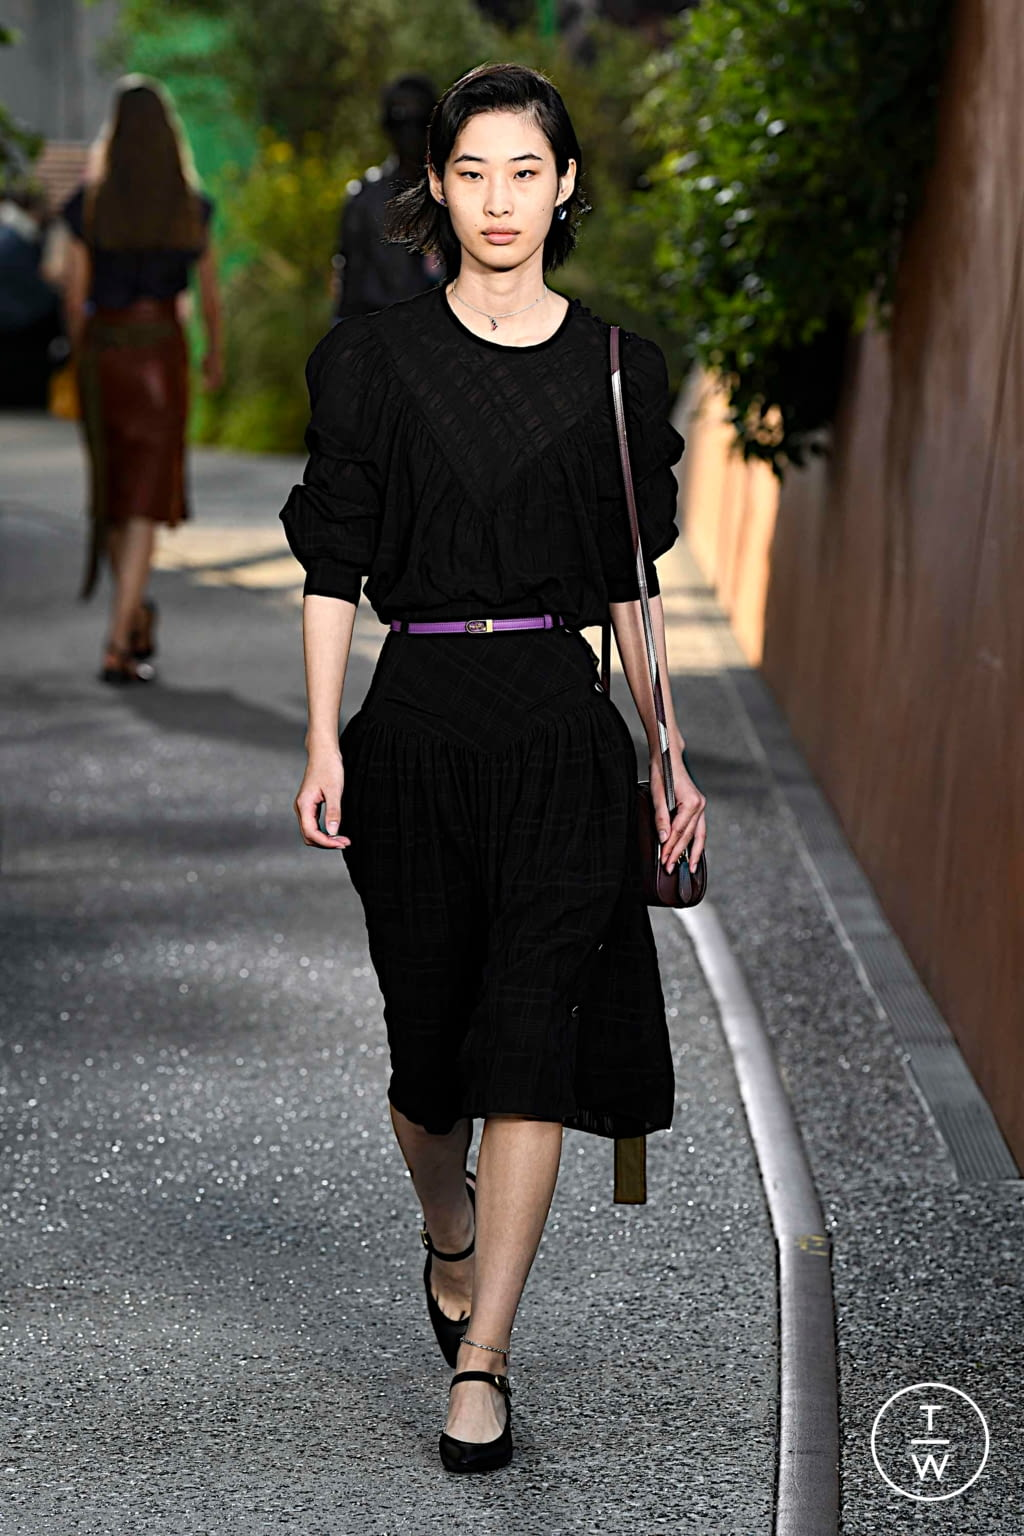 Fashion Week New York Spring/Summer 2020 look 28 from the Coach 1941 collection womenswear